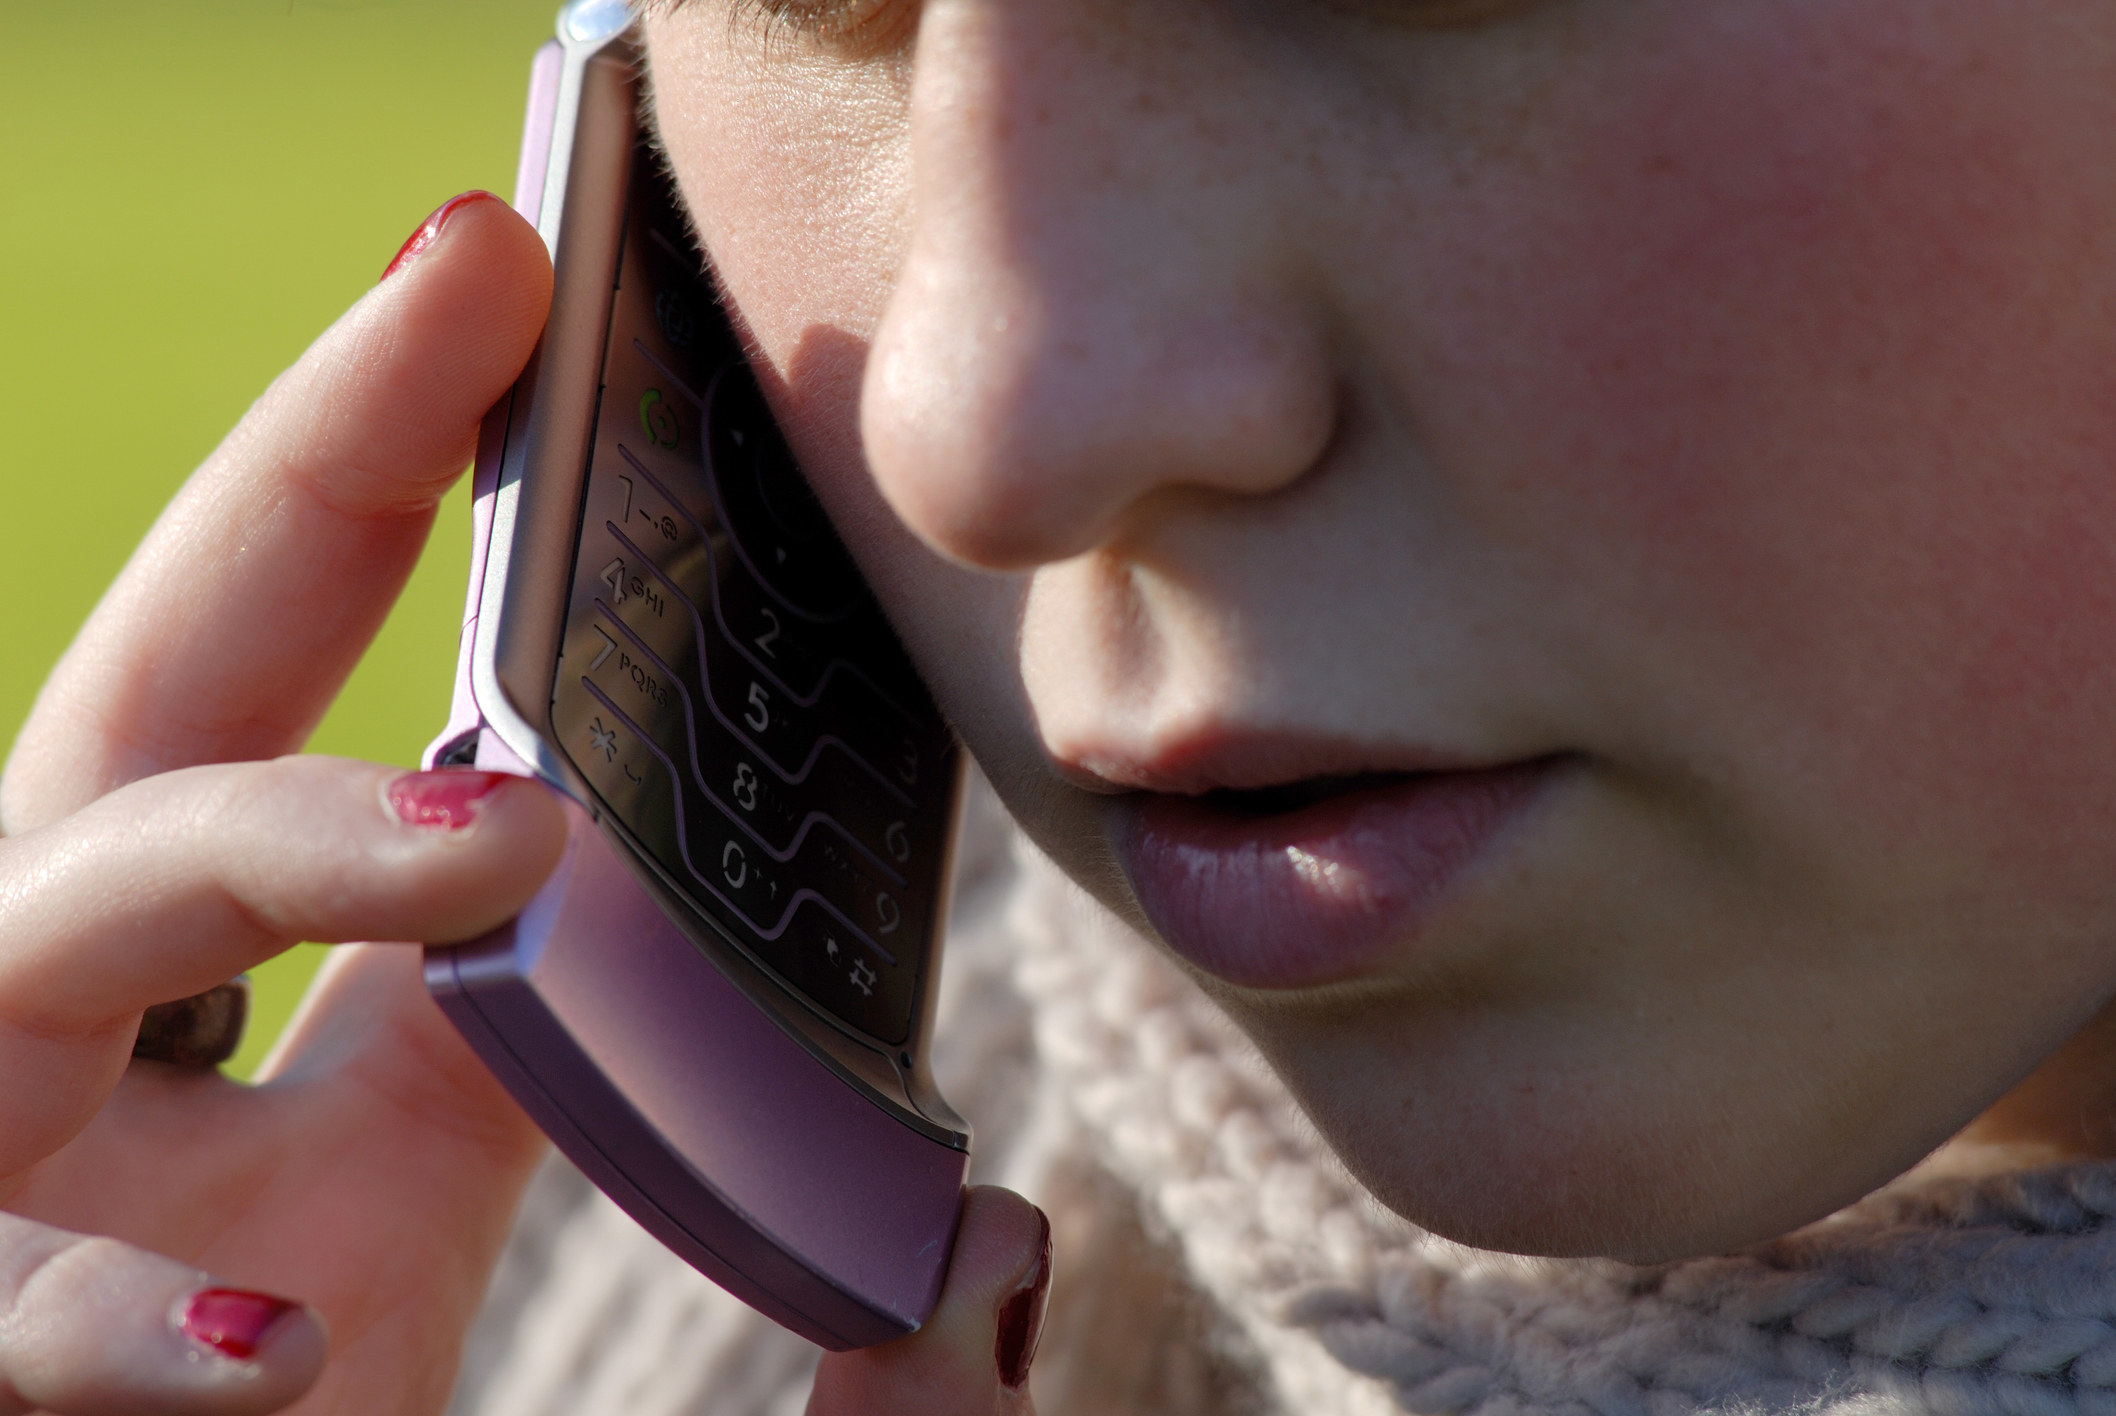 A stock image of a close-up of a teen girl talking on a hot pink Razr phone